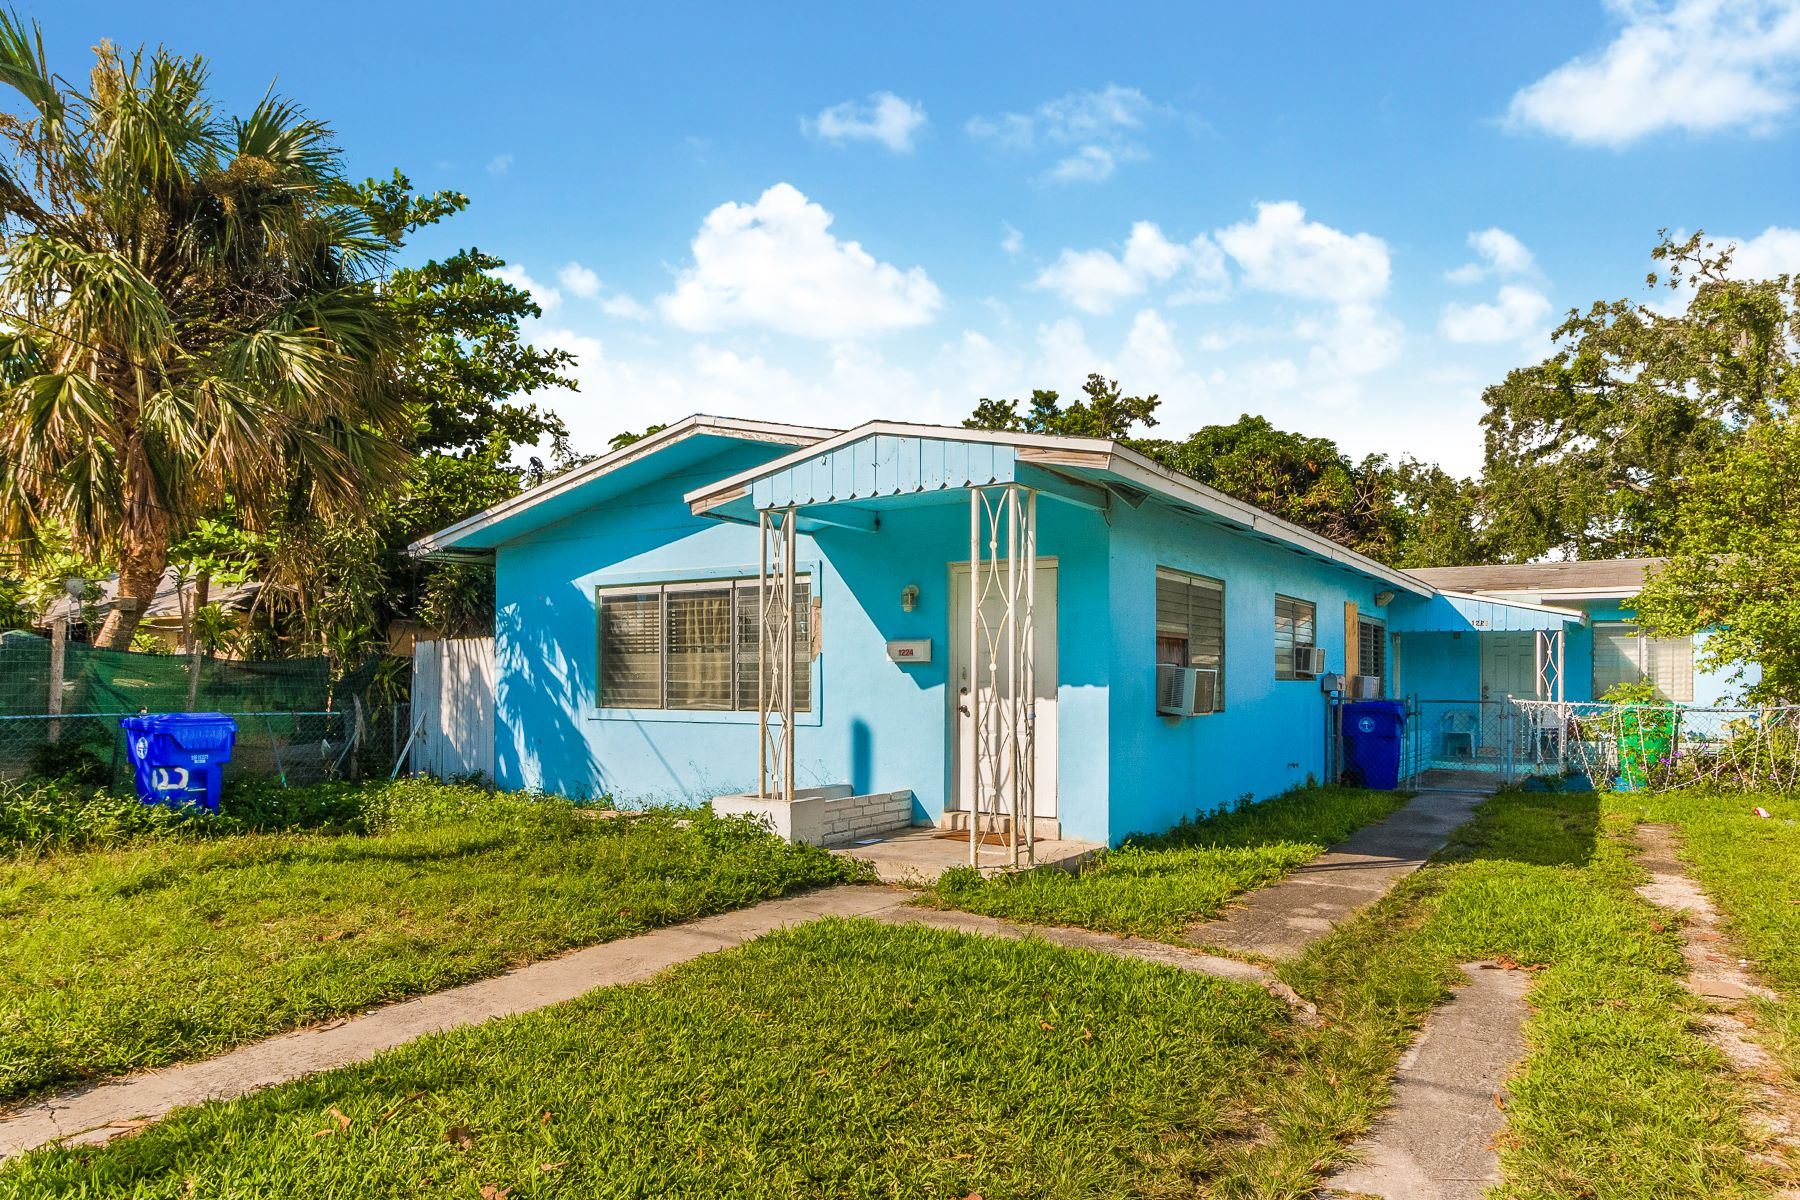 Duplex for Sale at 1224 Nw 8th Ct Miami, Florida, 33136 United States